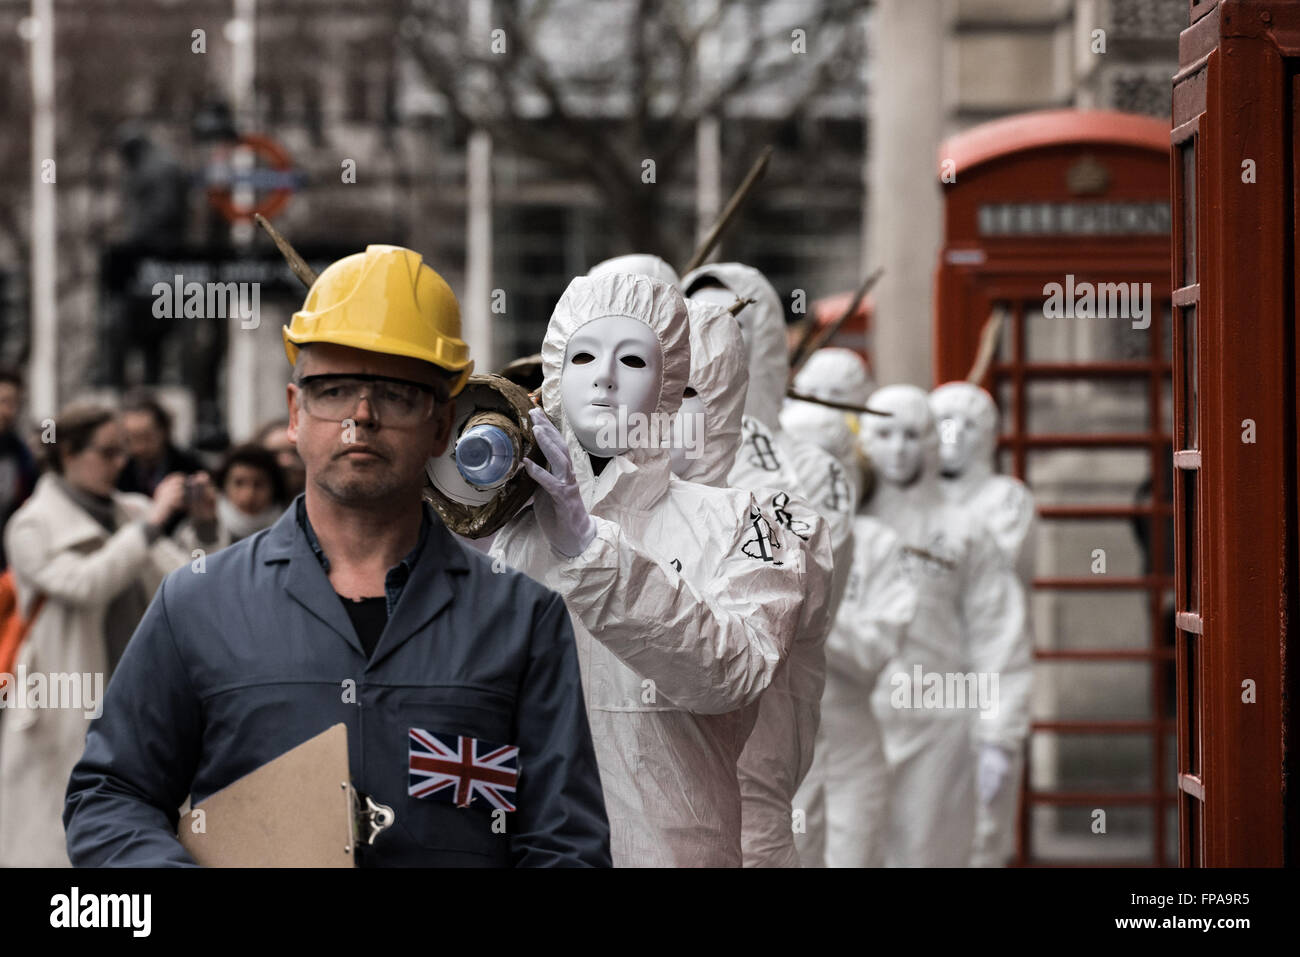 London, UK. 18th March, 2016. Amnesty human rights campaigners carry a batch of five giant dummy missiles through - Stock Image